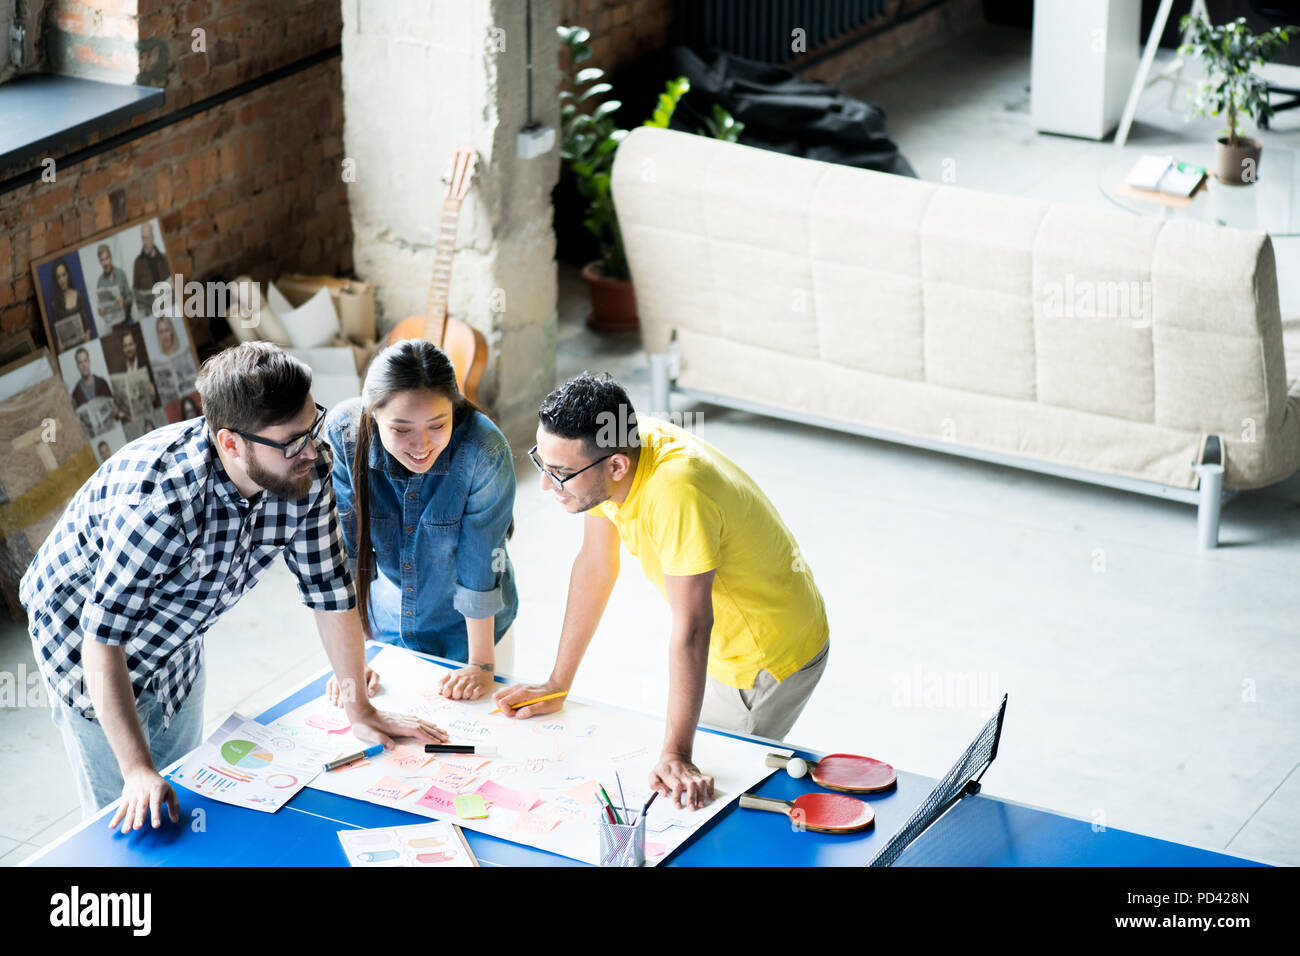 Business Team Brainstorming - Stock Image